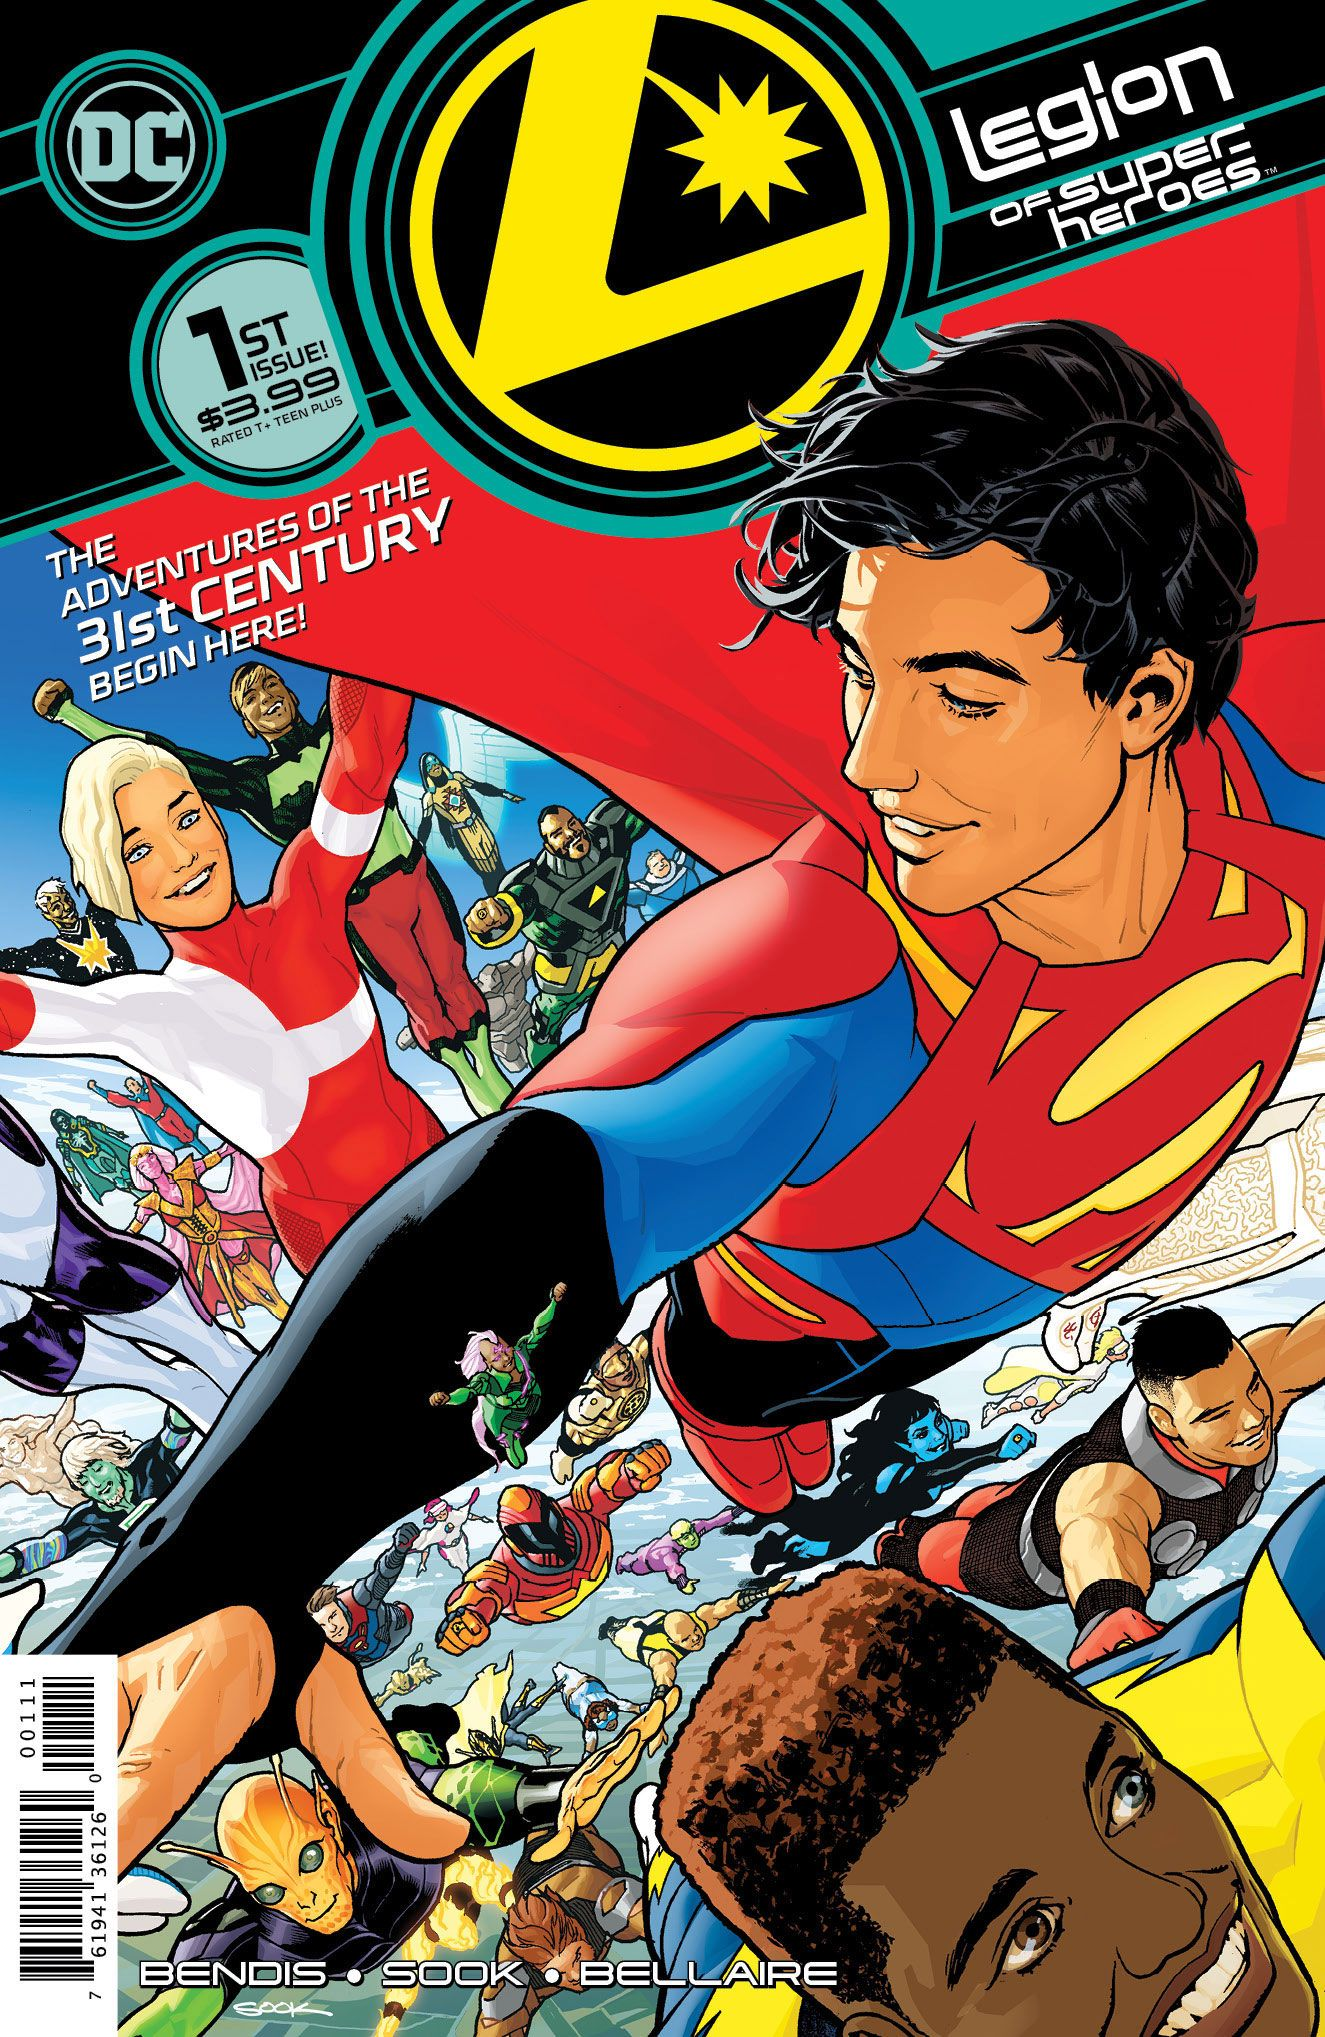 Legion of Super-Heroes #1 Gives Us the First Look the Future of the DC Universe